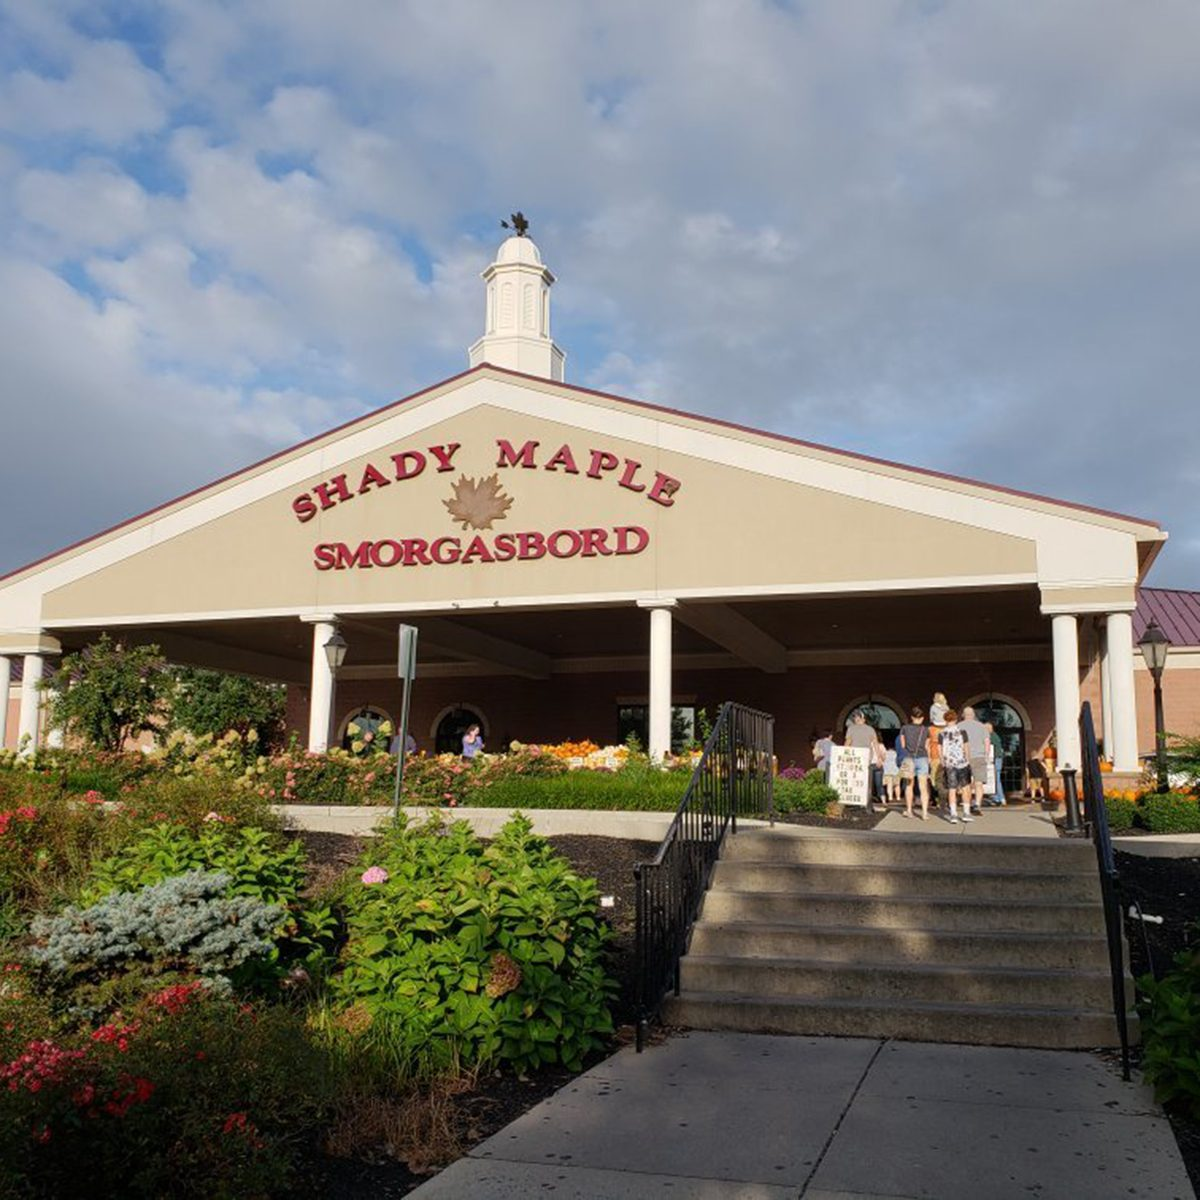 Pennsylvania: Shady Maple Smorgasbord, East Earl